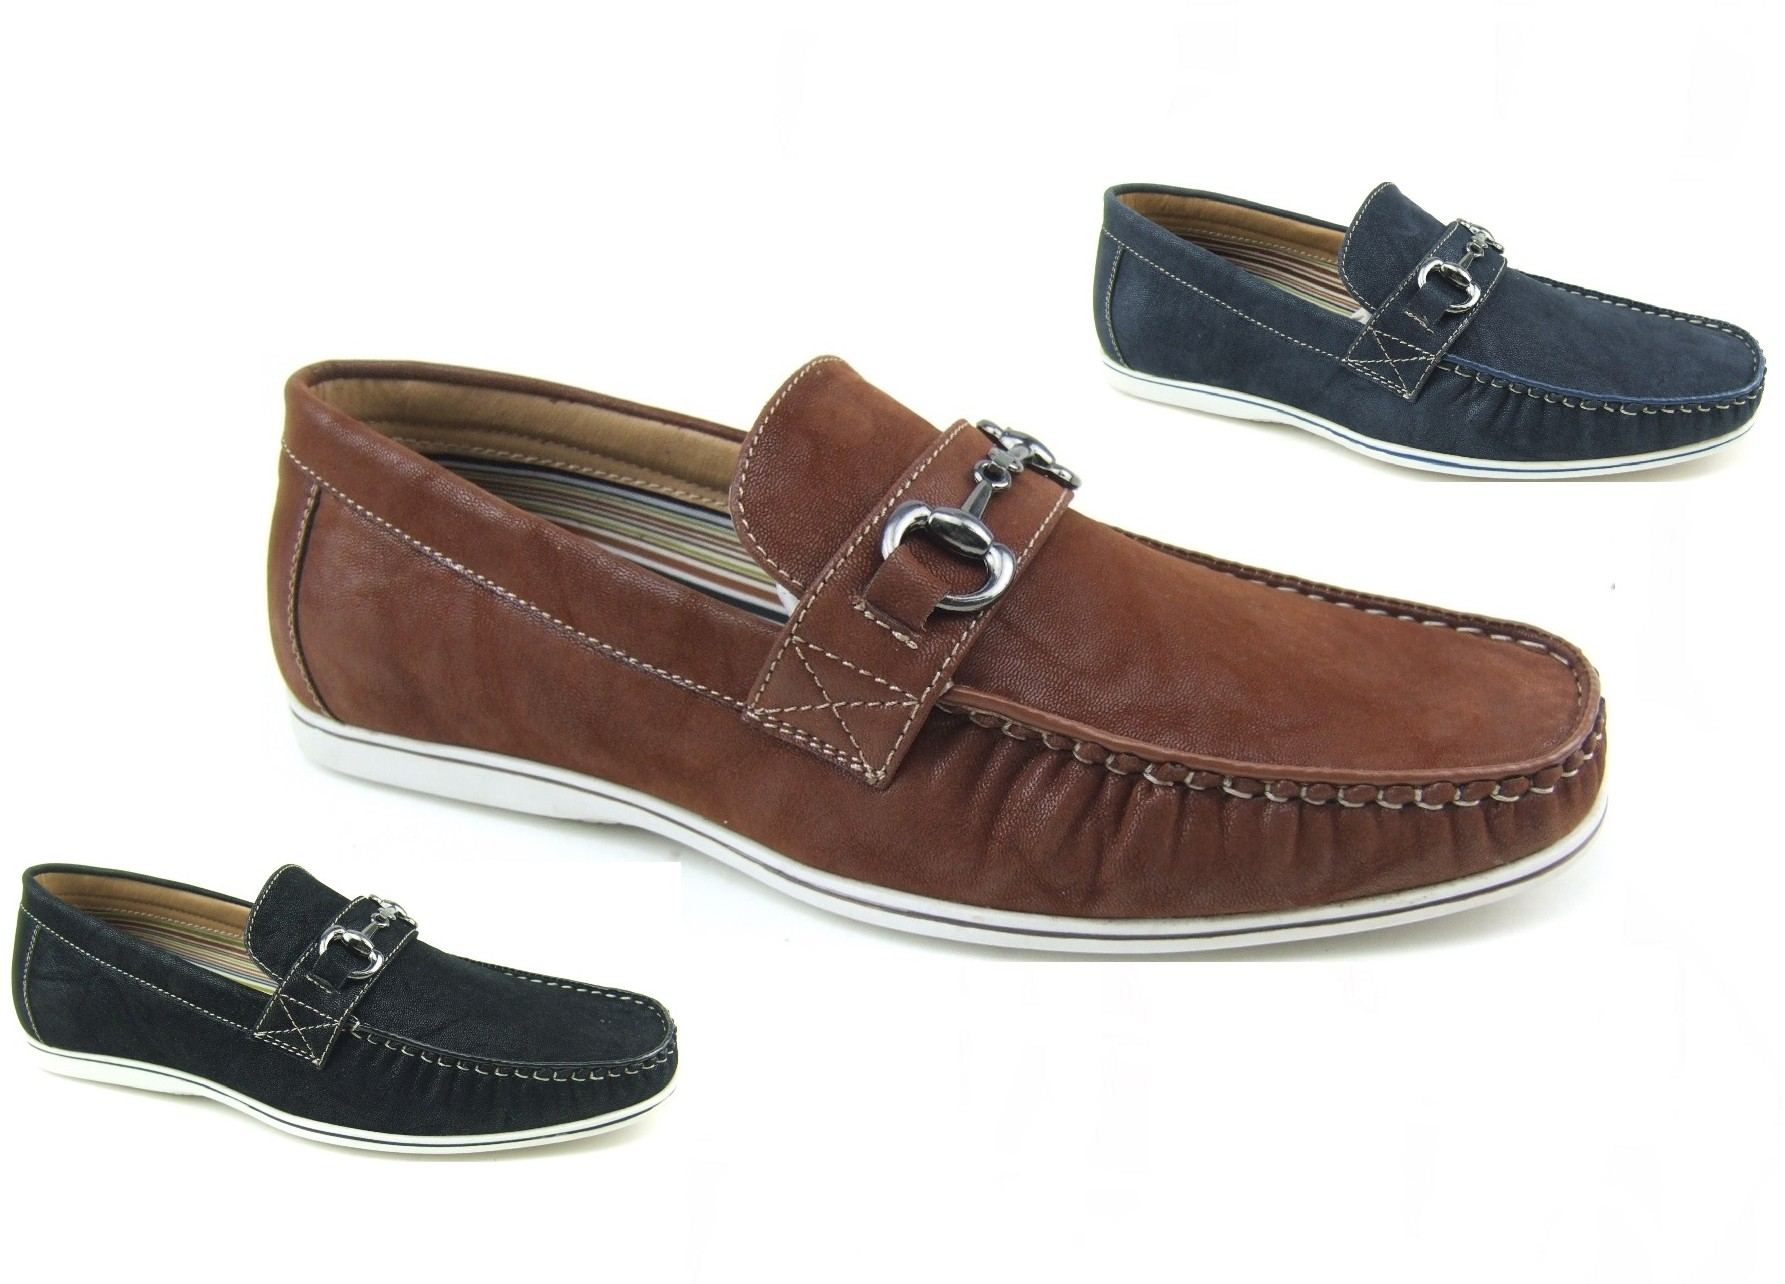 Mens Buckle Loafers Slip On Shoes Moccasin Toe Stitching ...